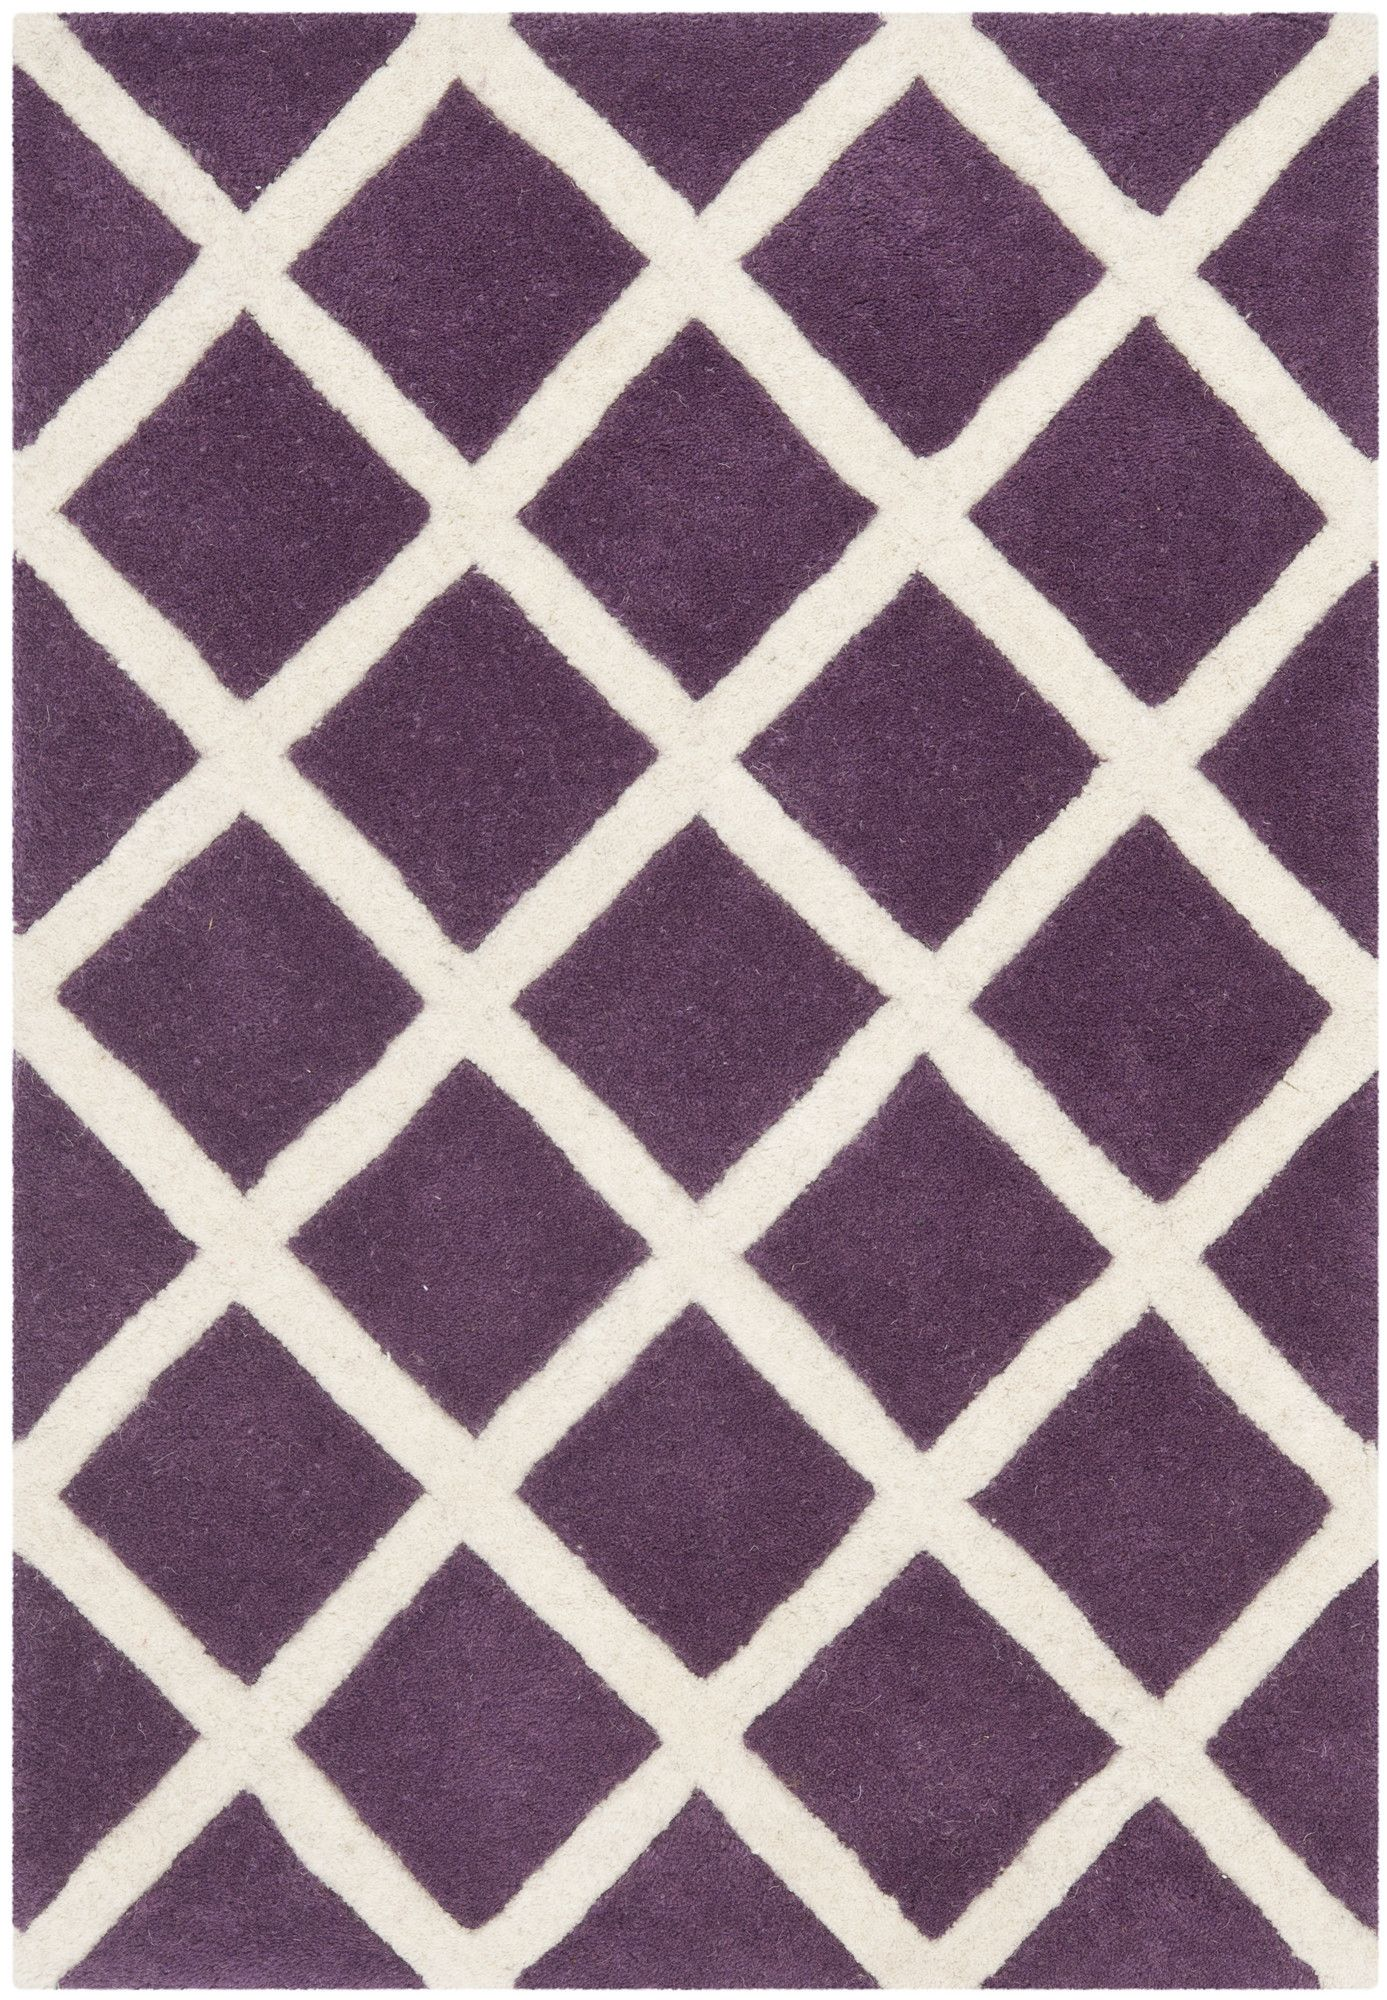 Purple Rugs With Geometric Patterns   Purple Bedroom Ideas